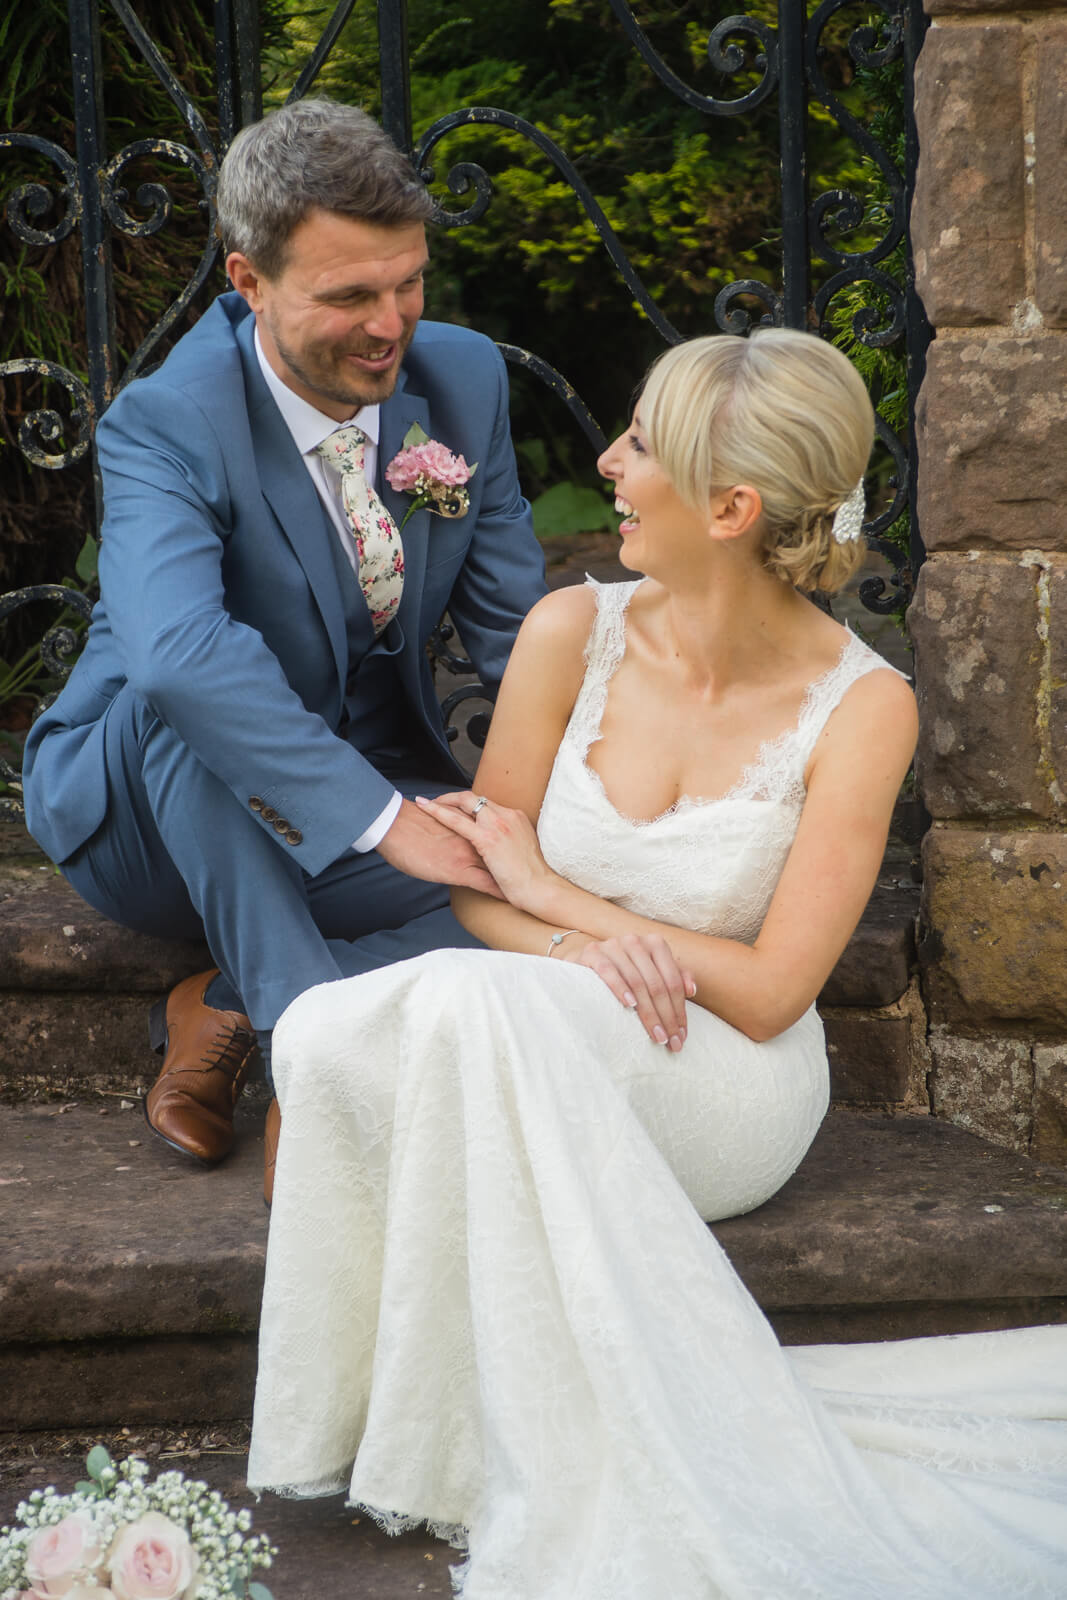 bride and groom sitting on garden steps laughing together